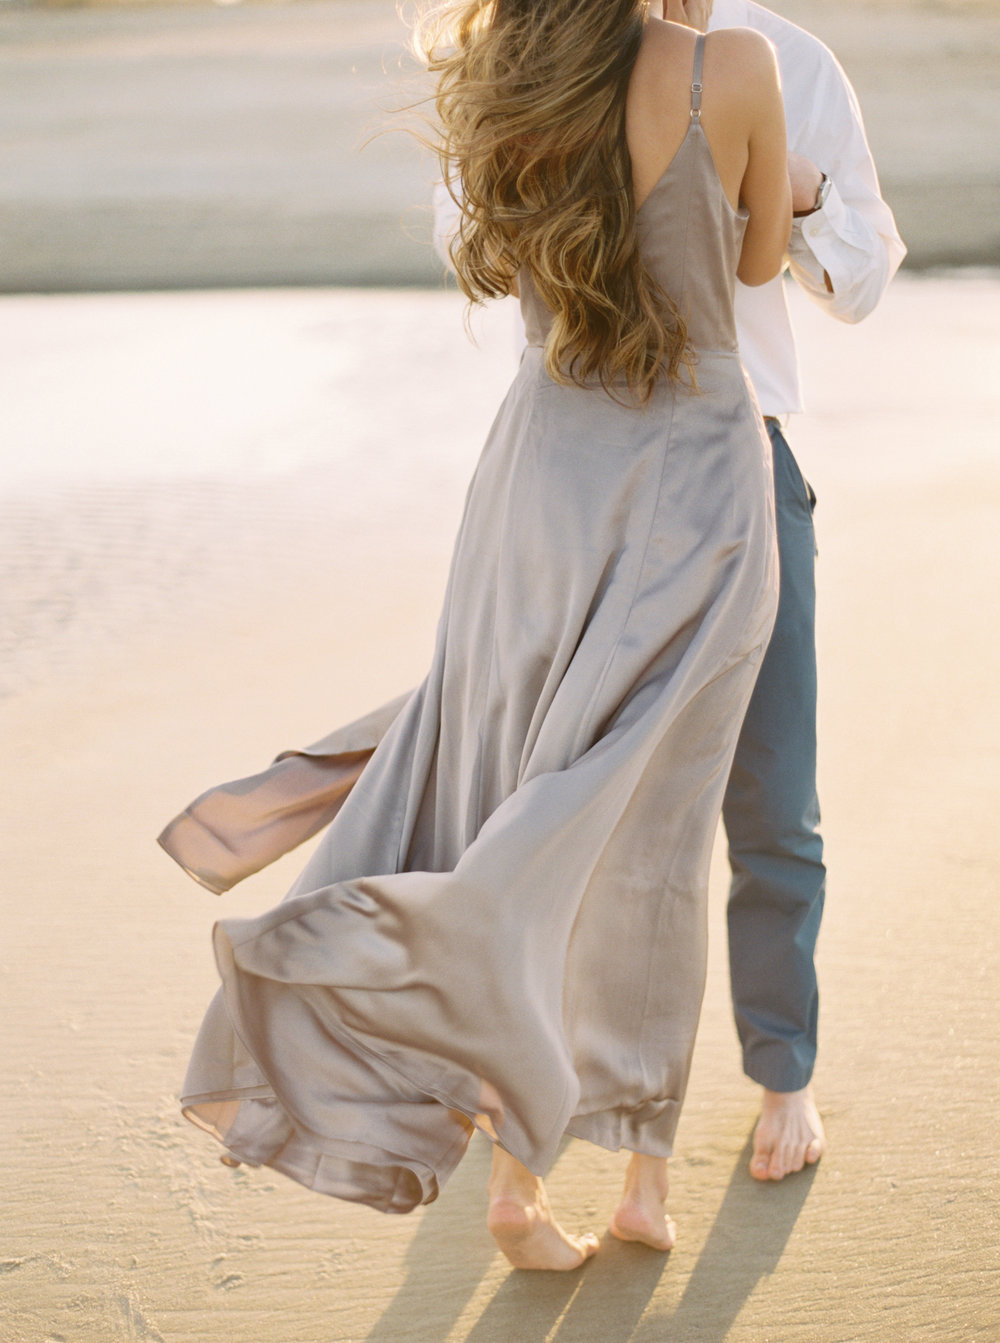 Beach engagement session Charleston Lowcountry